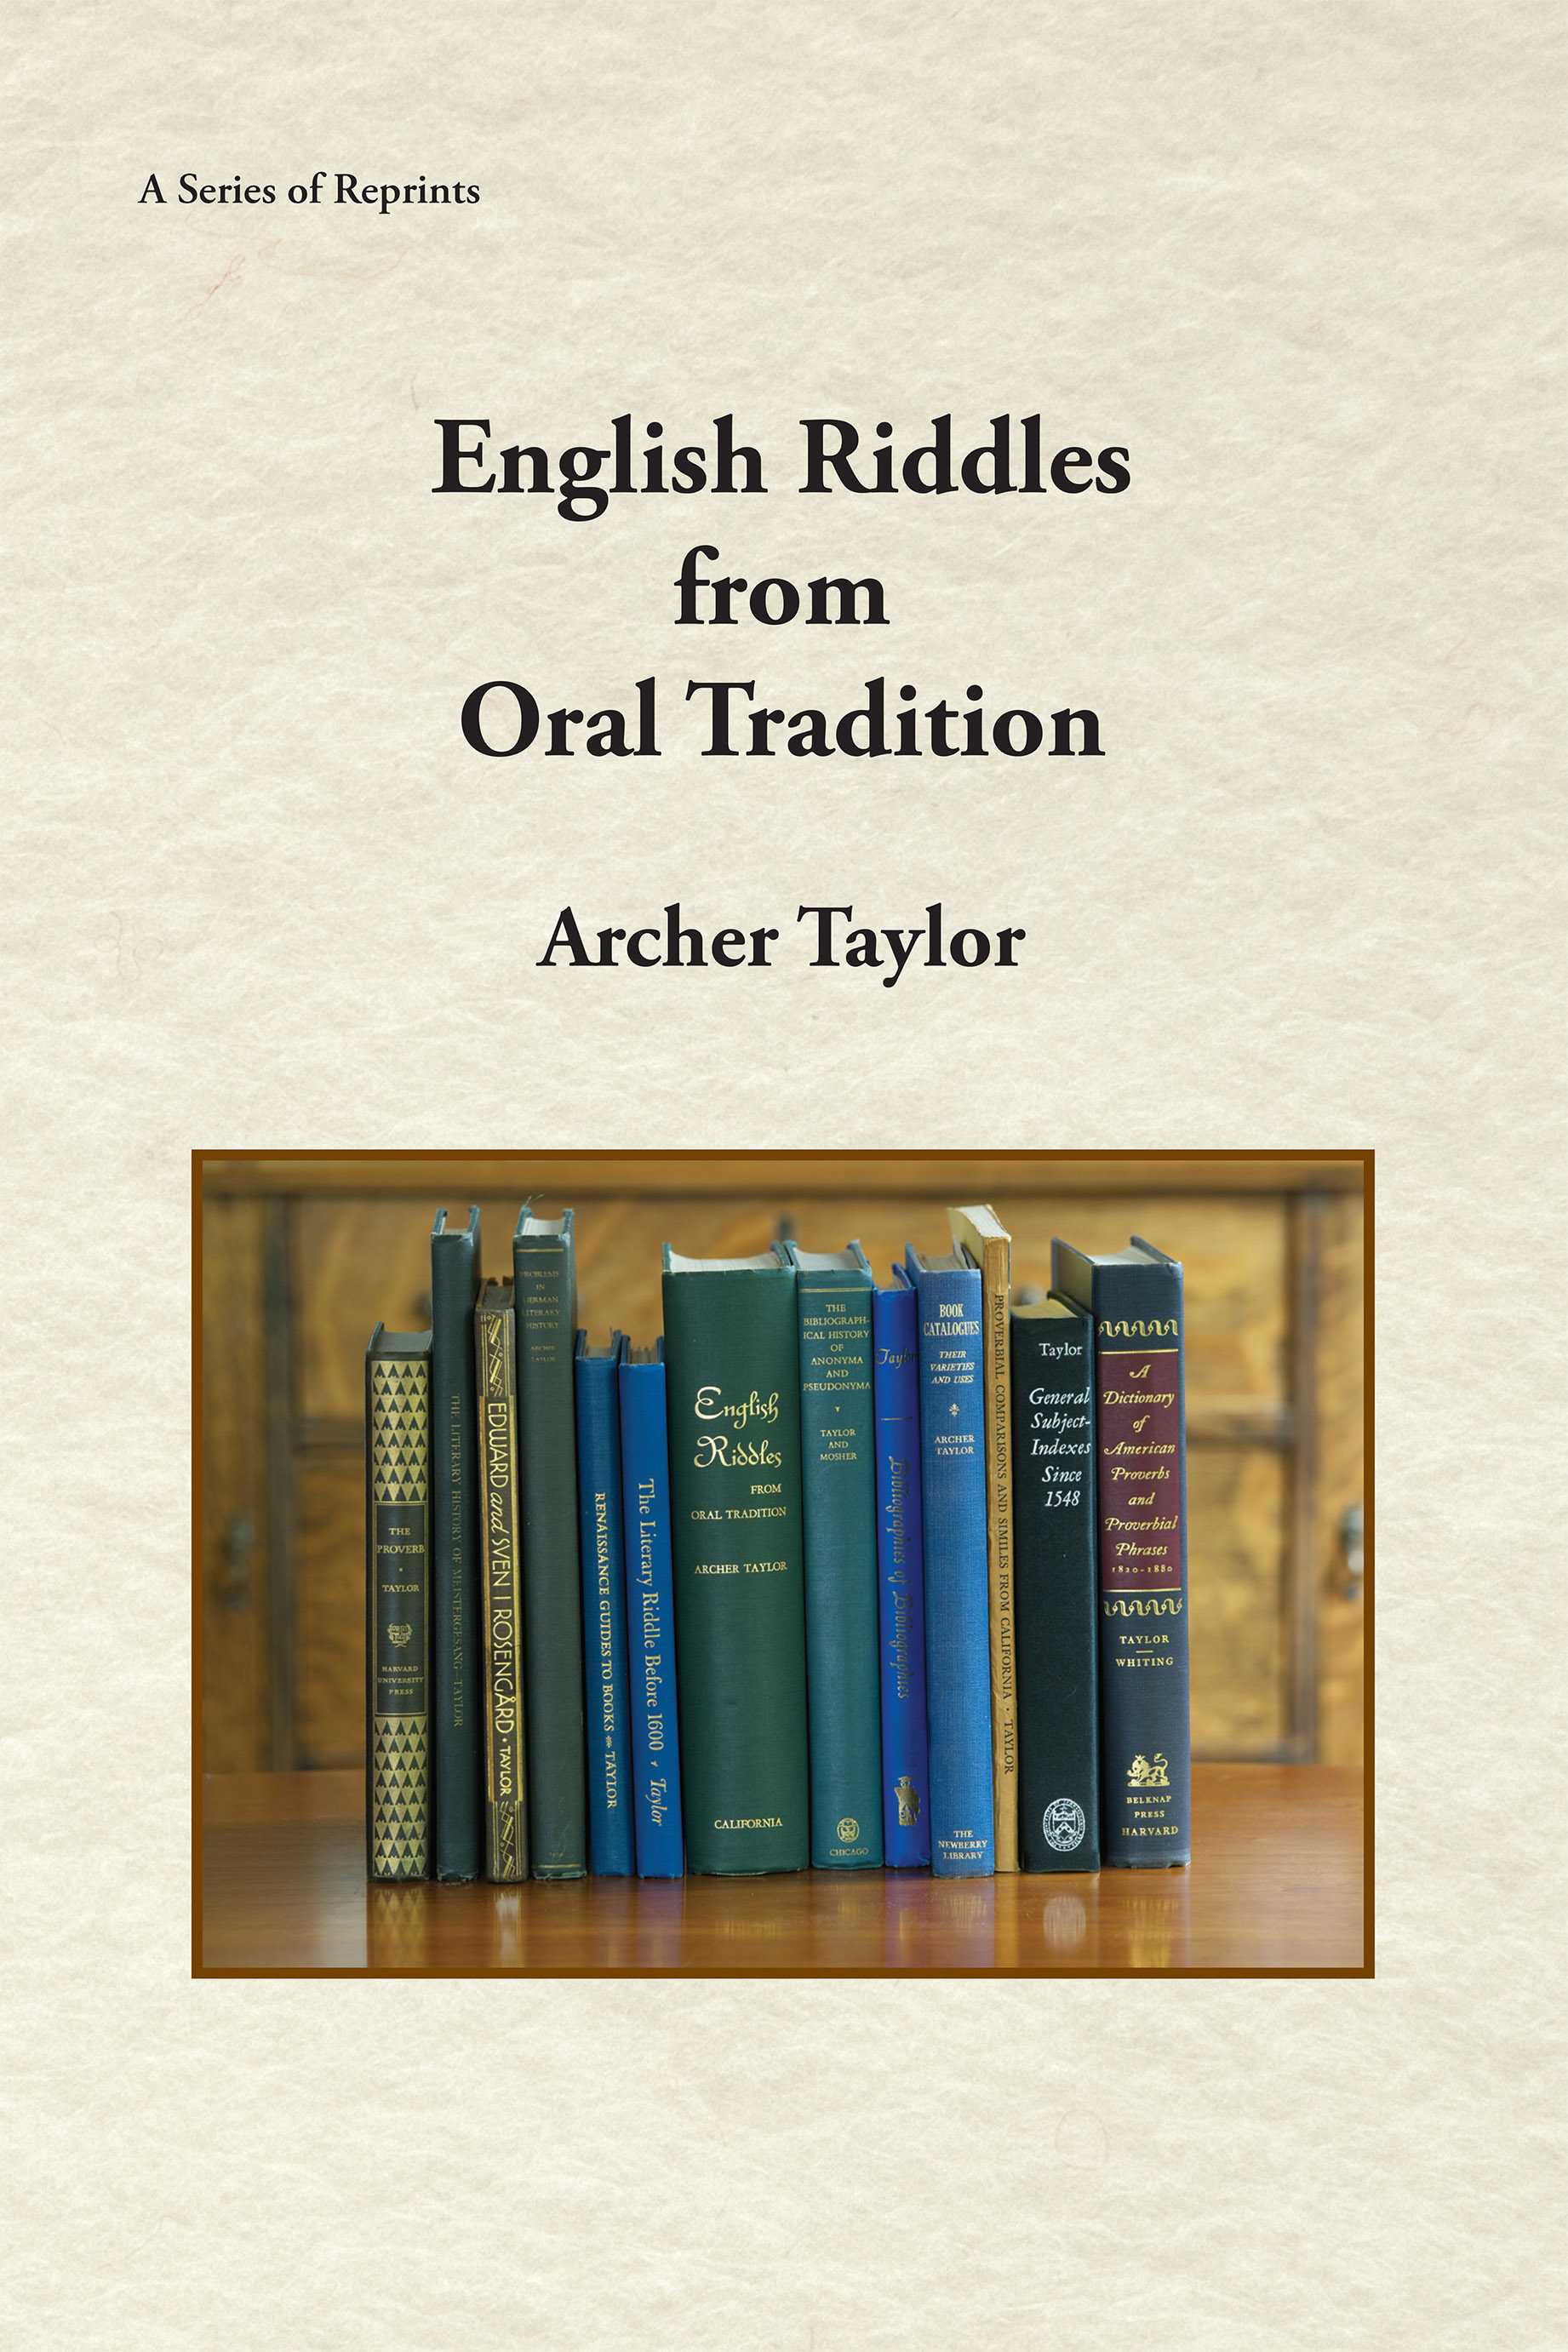 English Riddles in Oral Tradition